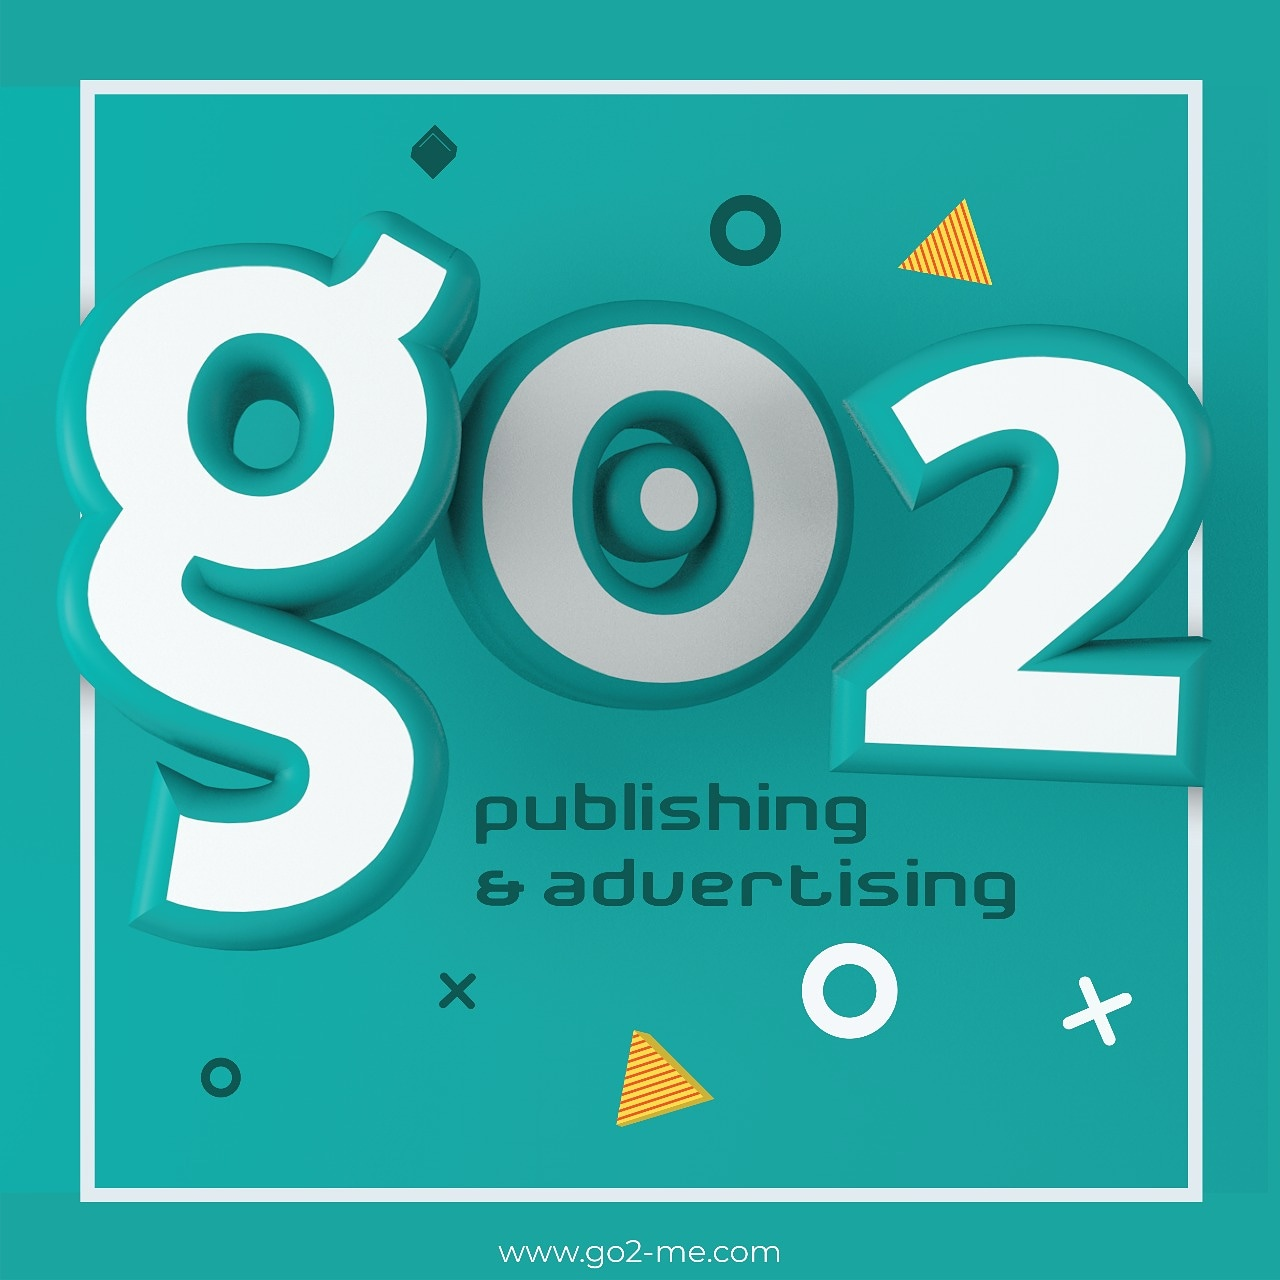 Go2 Publishing & Advertising L.L.C